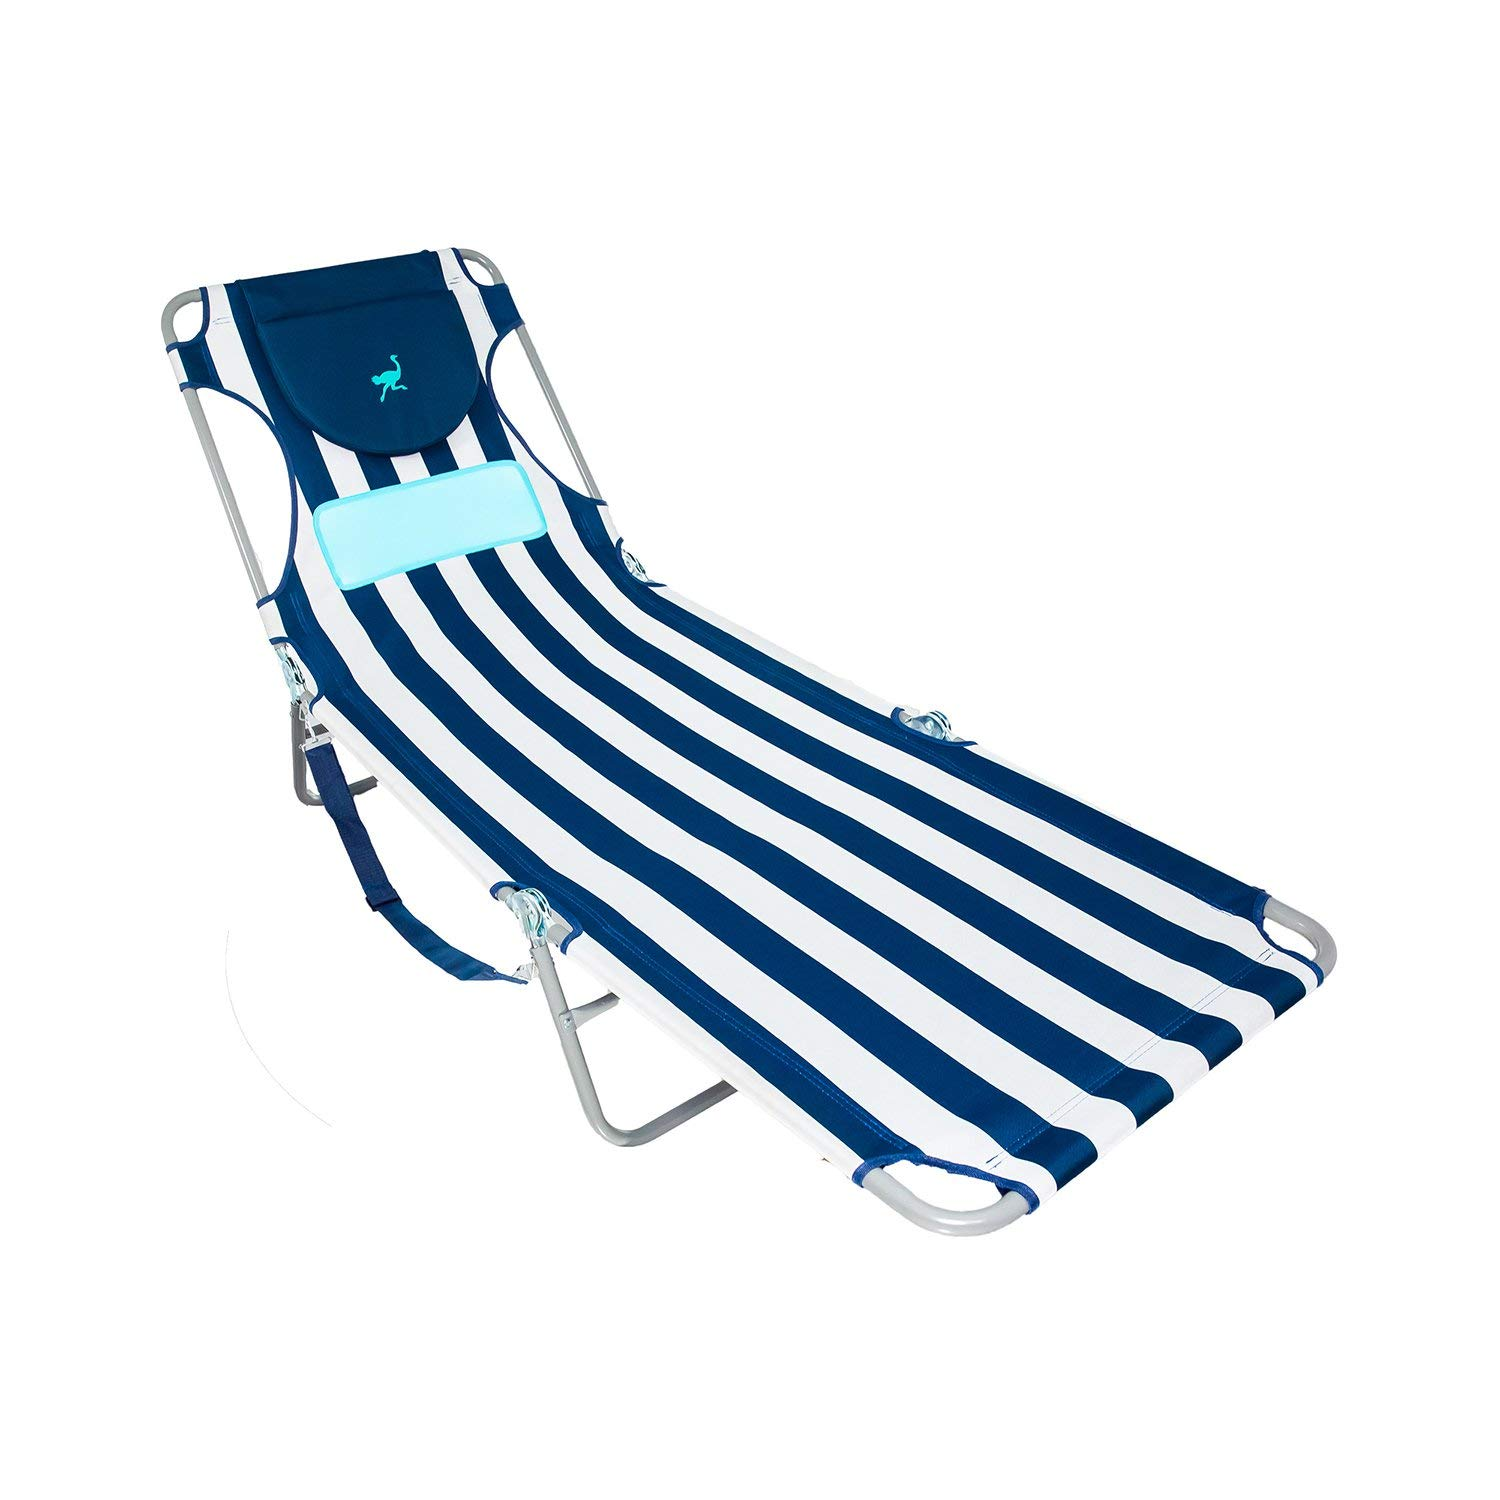 Ostrich LCL-1006S LCL Ladies Comfort Lounger Striped, Blue and White